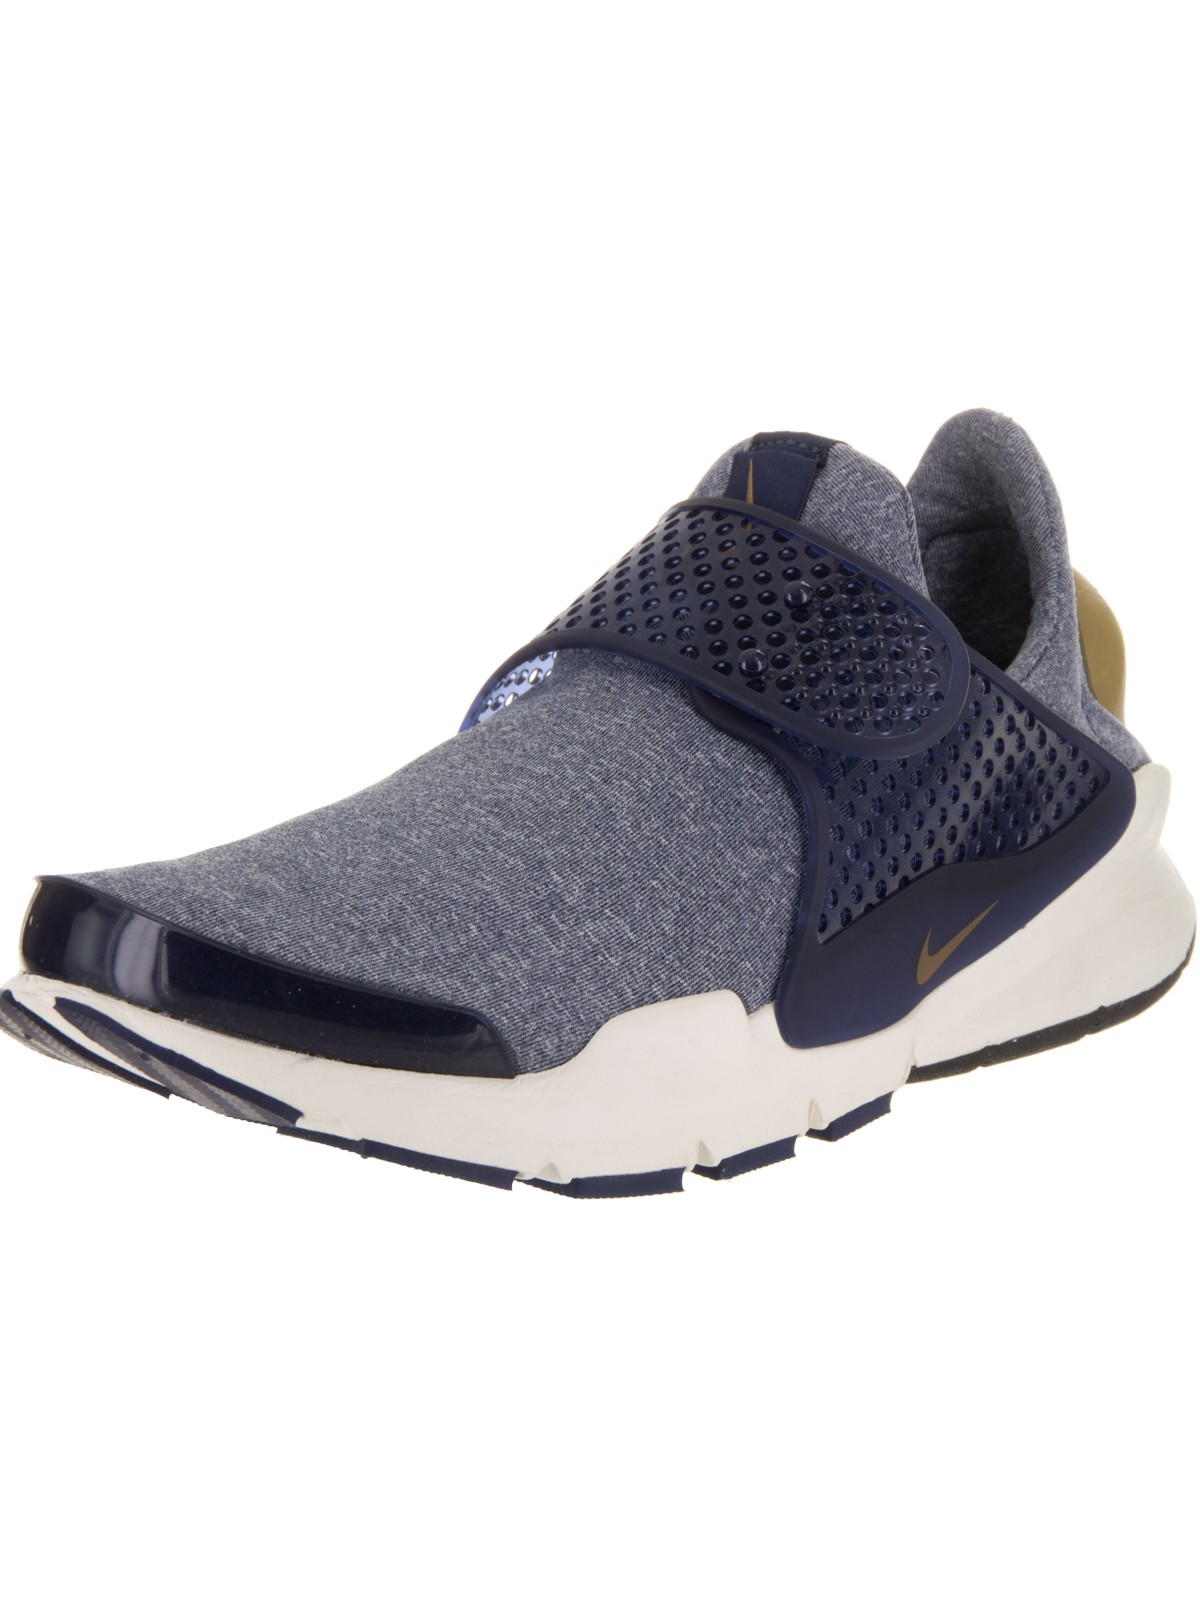 Womens Nike Sock Dart SE Midnight Navy Sail Golden Beige 862412-400